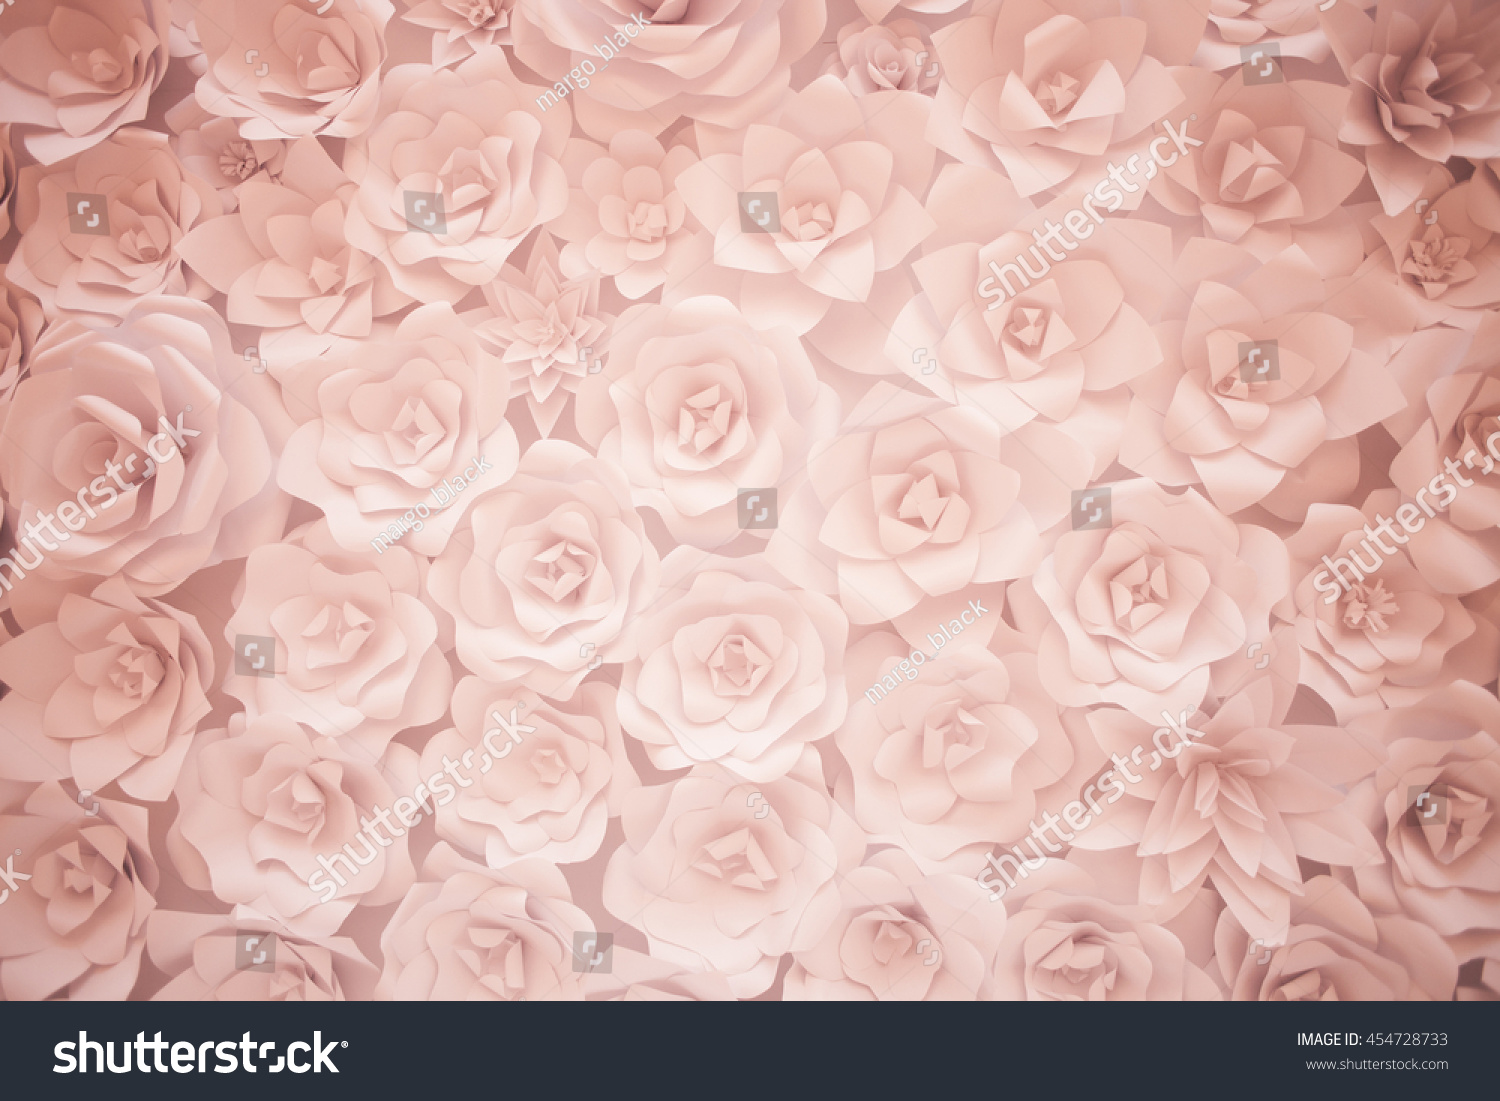 Decorative Background From White Paper Flowers Ez Canvas